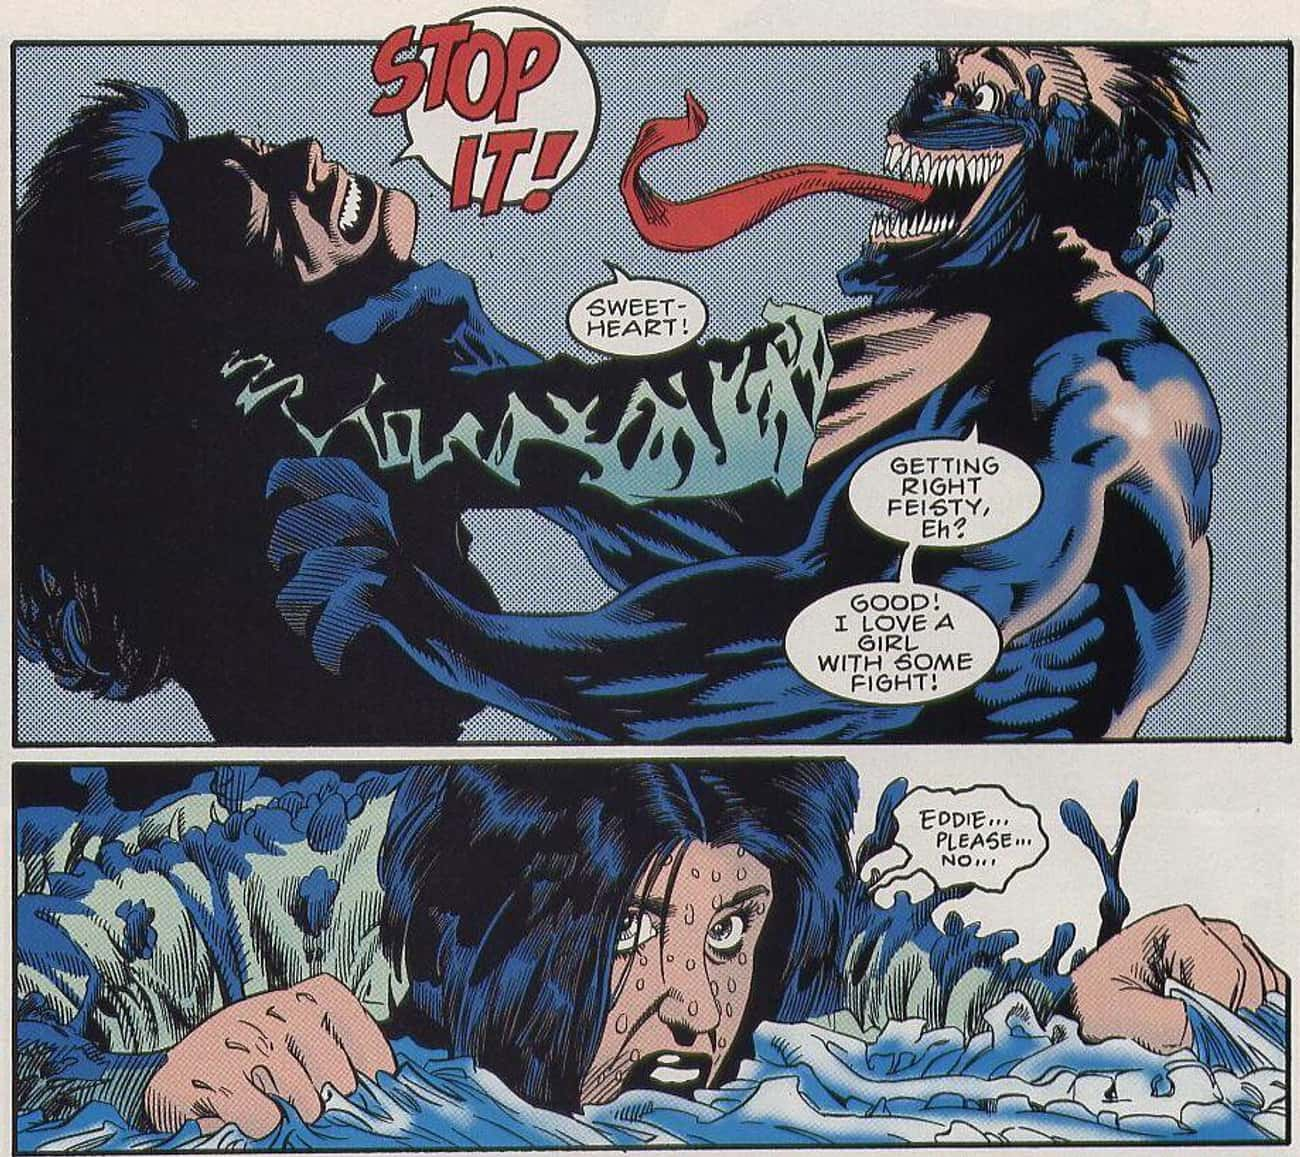 Venom Tried To Sexually Assault Eddie Brock's Girlfriend